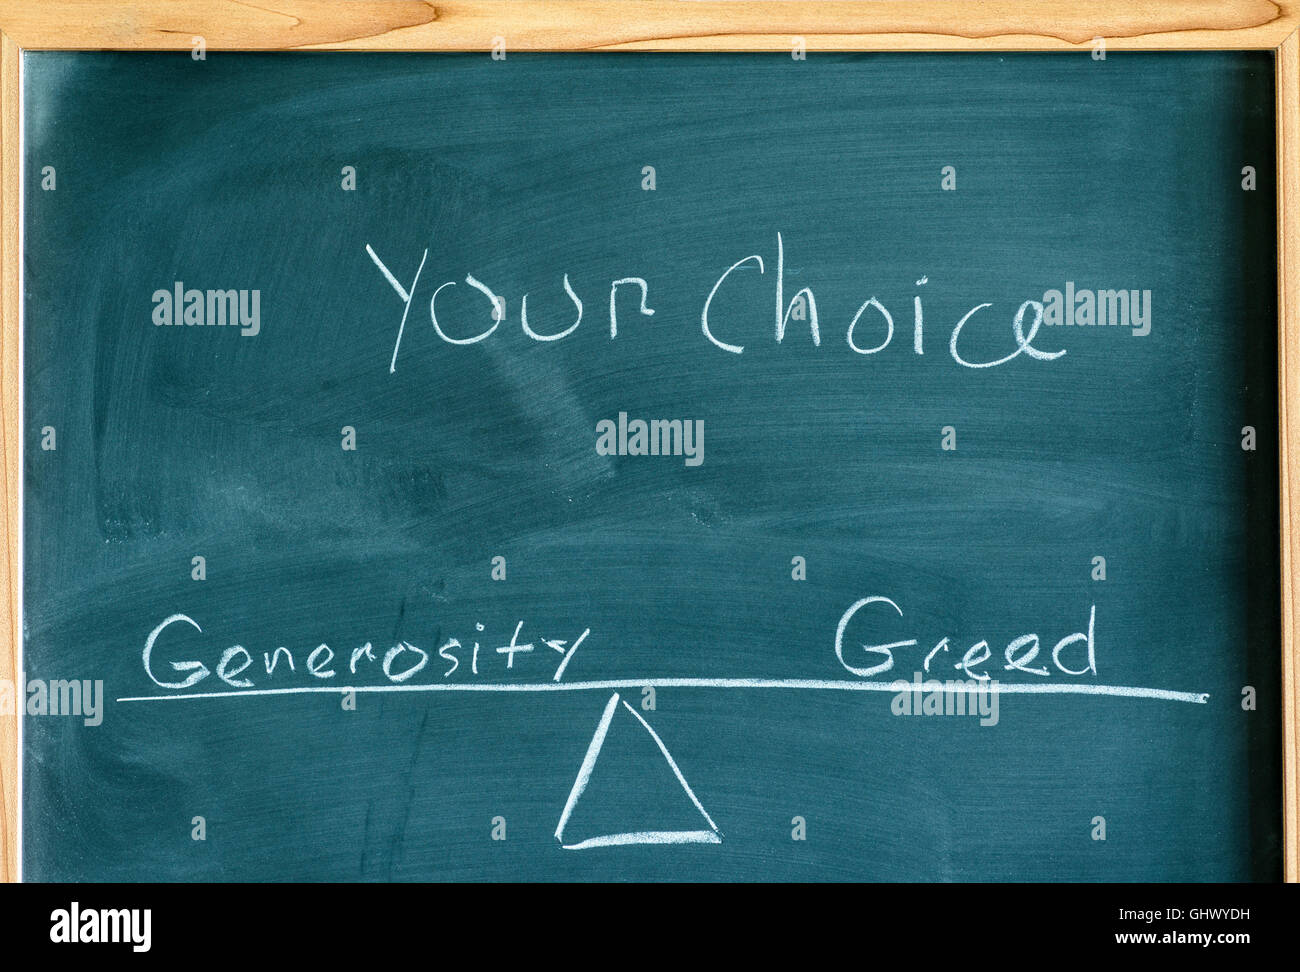 the words generosity and greed on a scale in equilibrium written on a chalkboard. - Stock Image